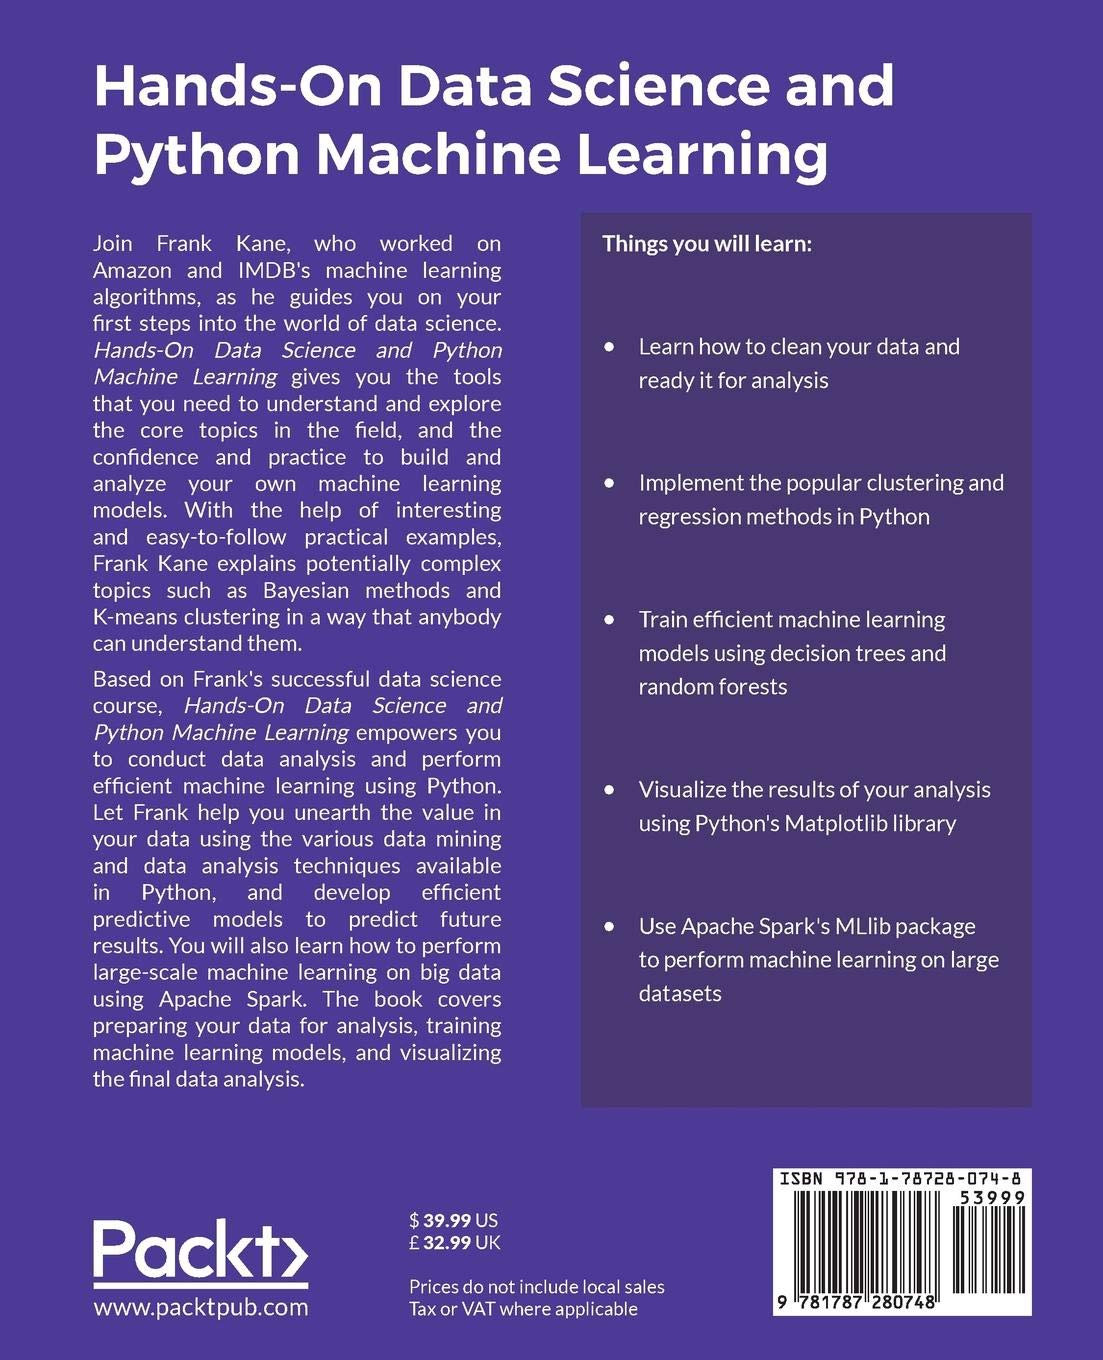 Buy Hands-On Data Science and Python Machine Learning Book